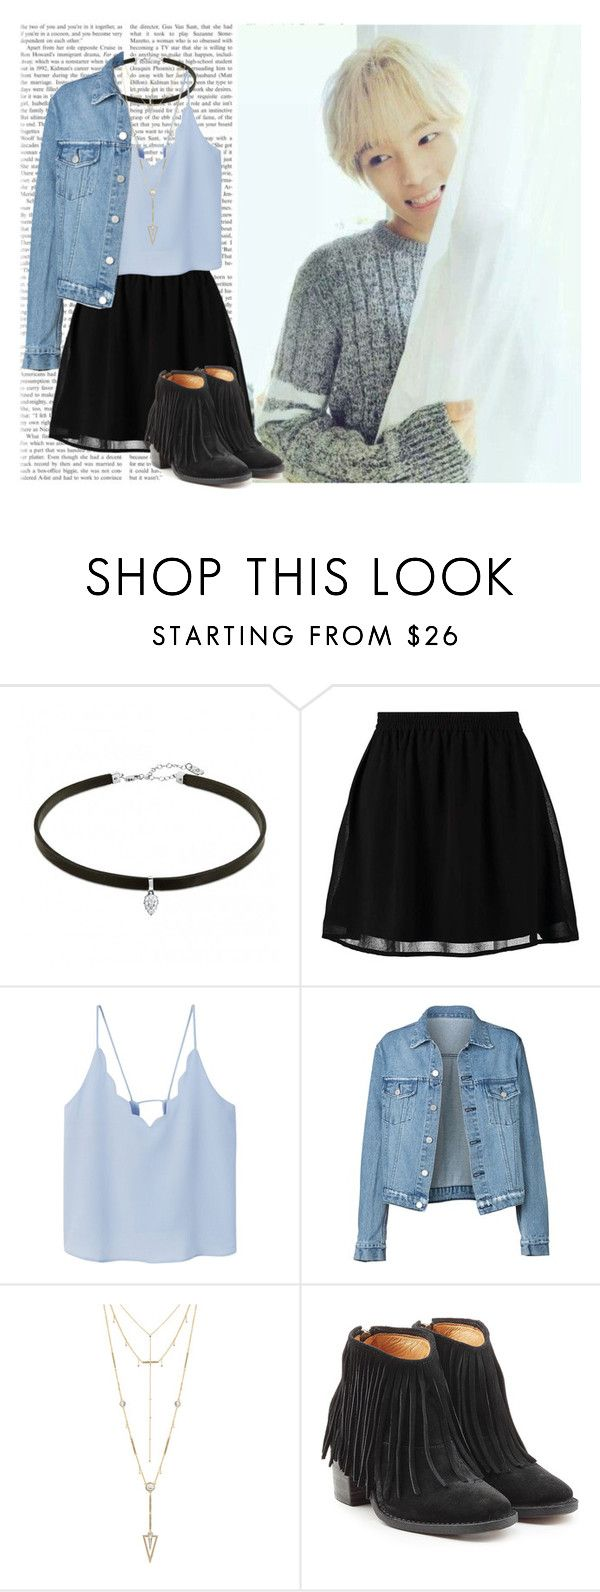 """Date w/  Minhyuk (Monsta X)"" by a-kookie ❤ liked on Polyvore featuring even&odd, MANGO, House of Harlow 1960, Fiorentini + Baker, minhyuk, monstax and LeeMinhyuk"